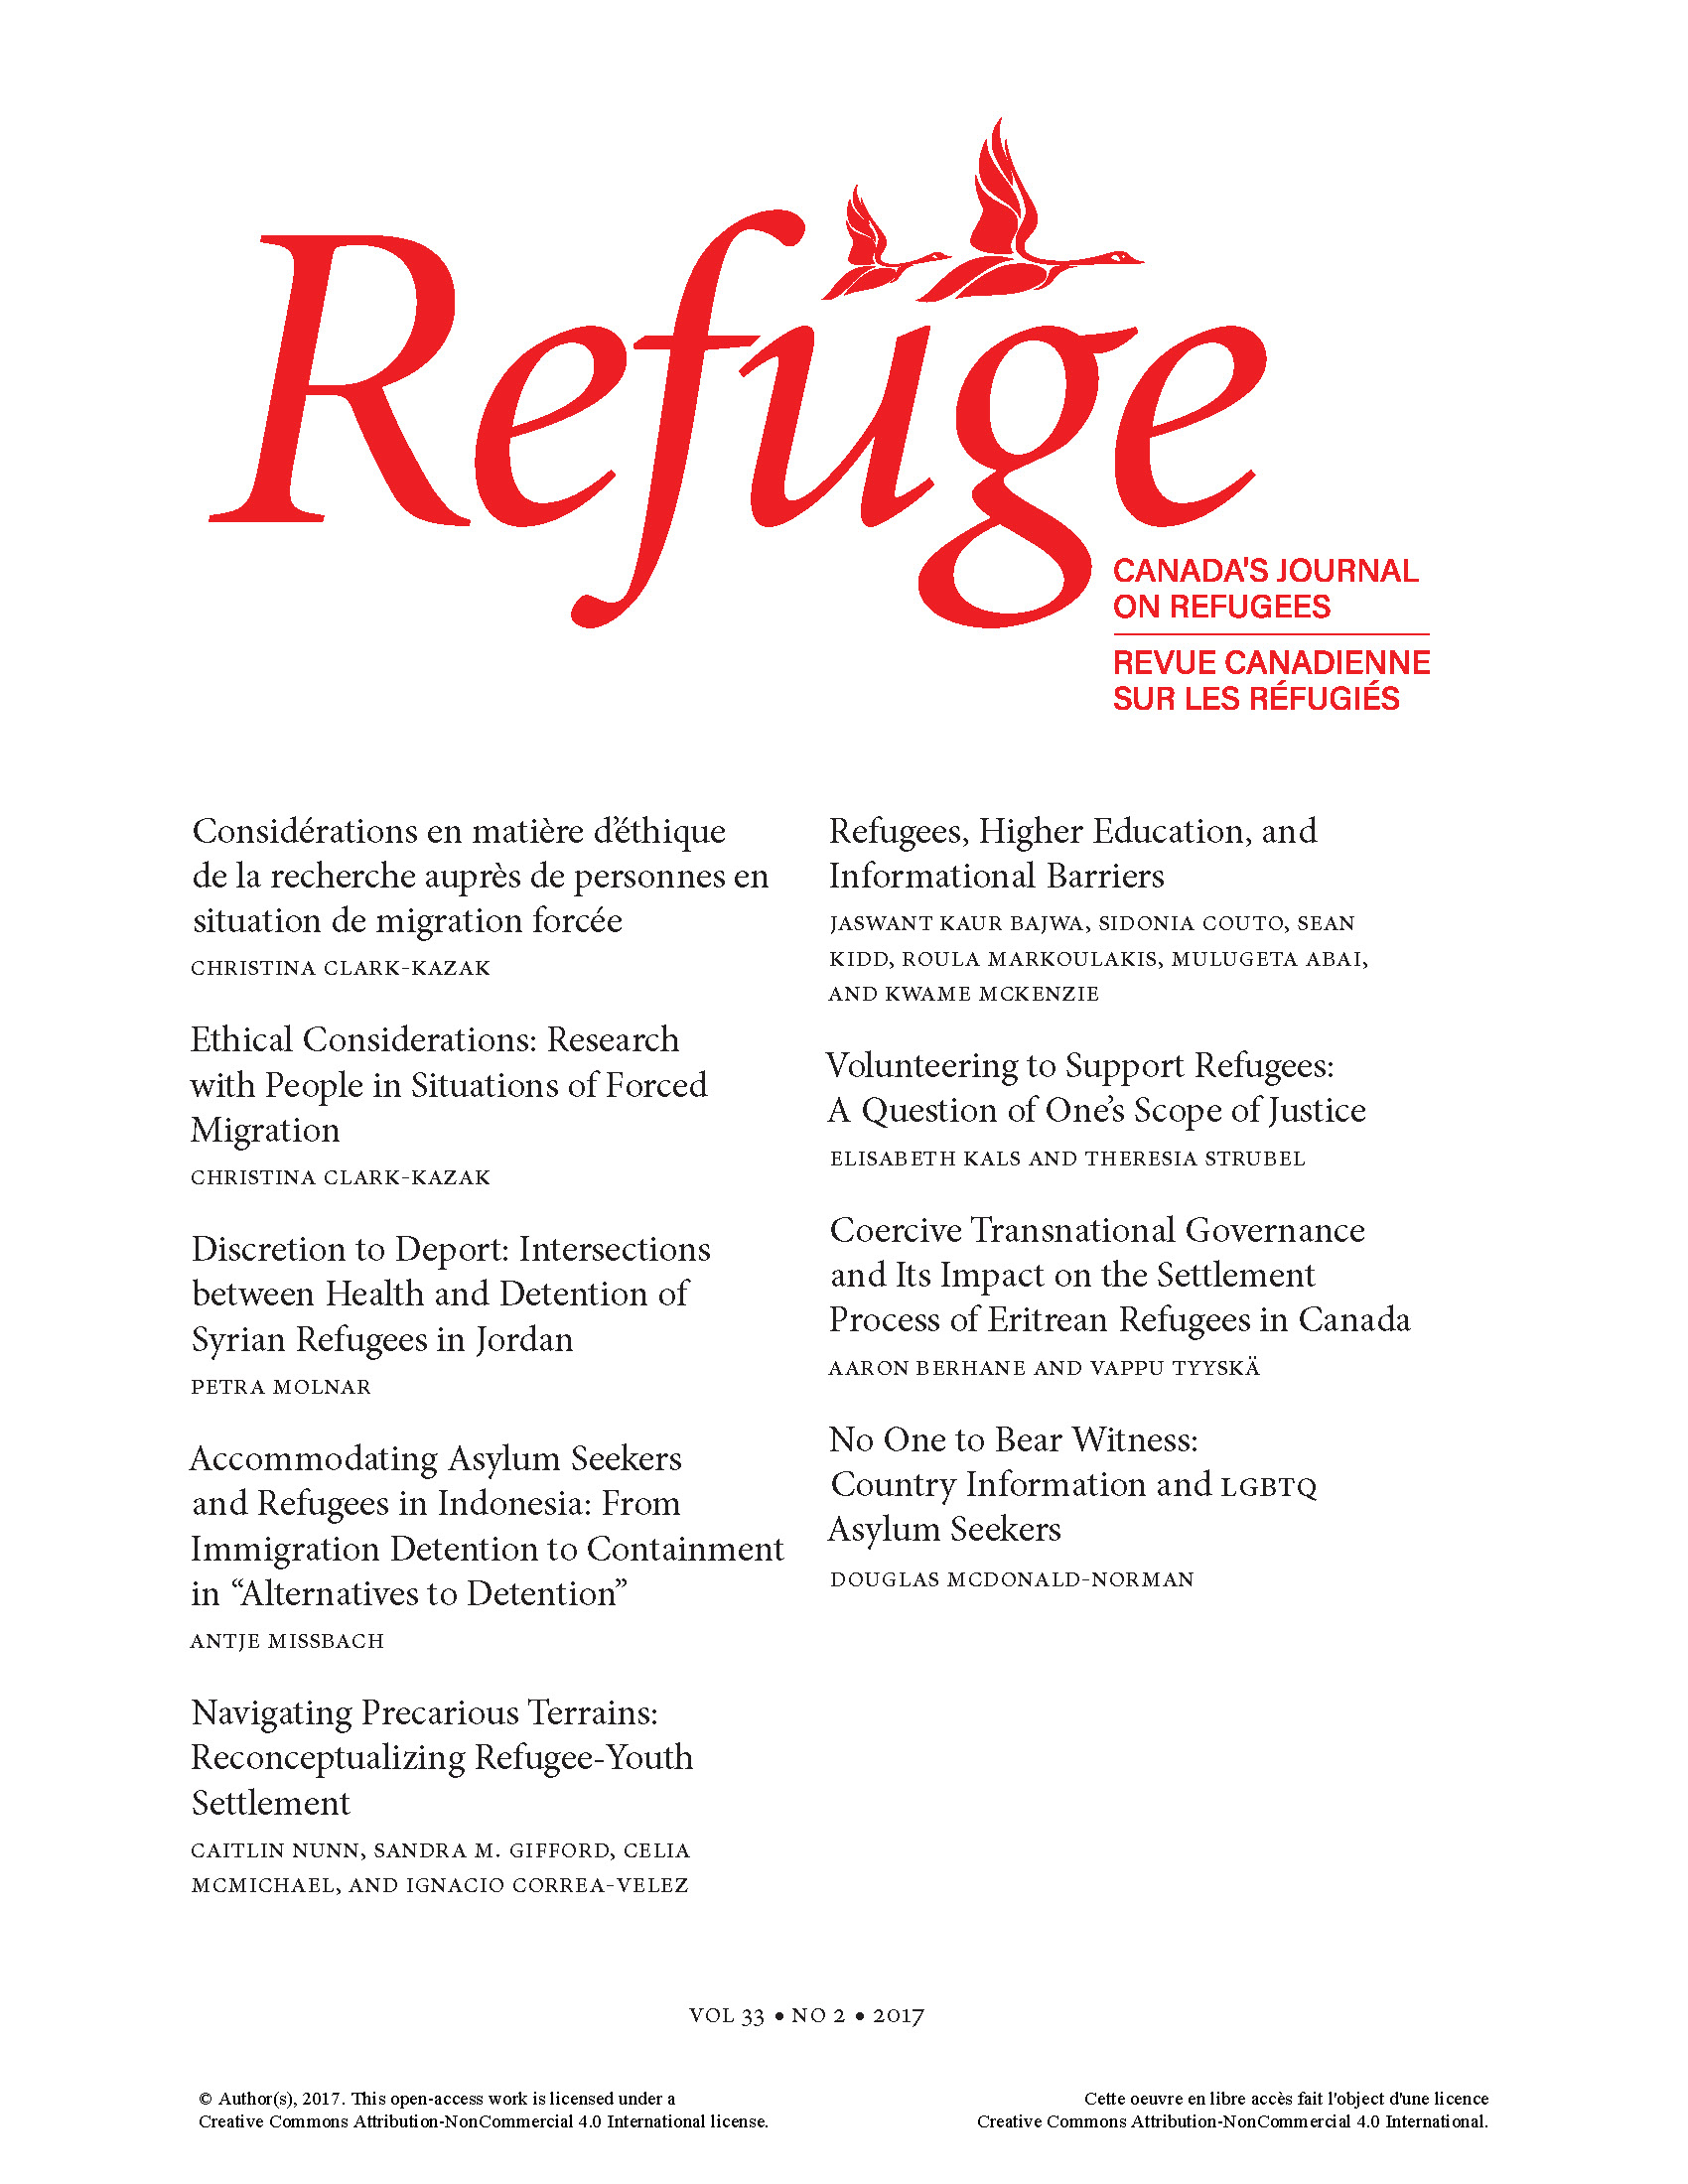 cover of Refuge general issue 33 no. 2 2017